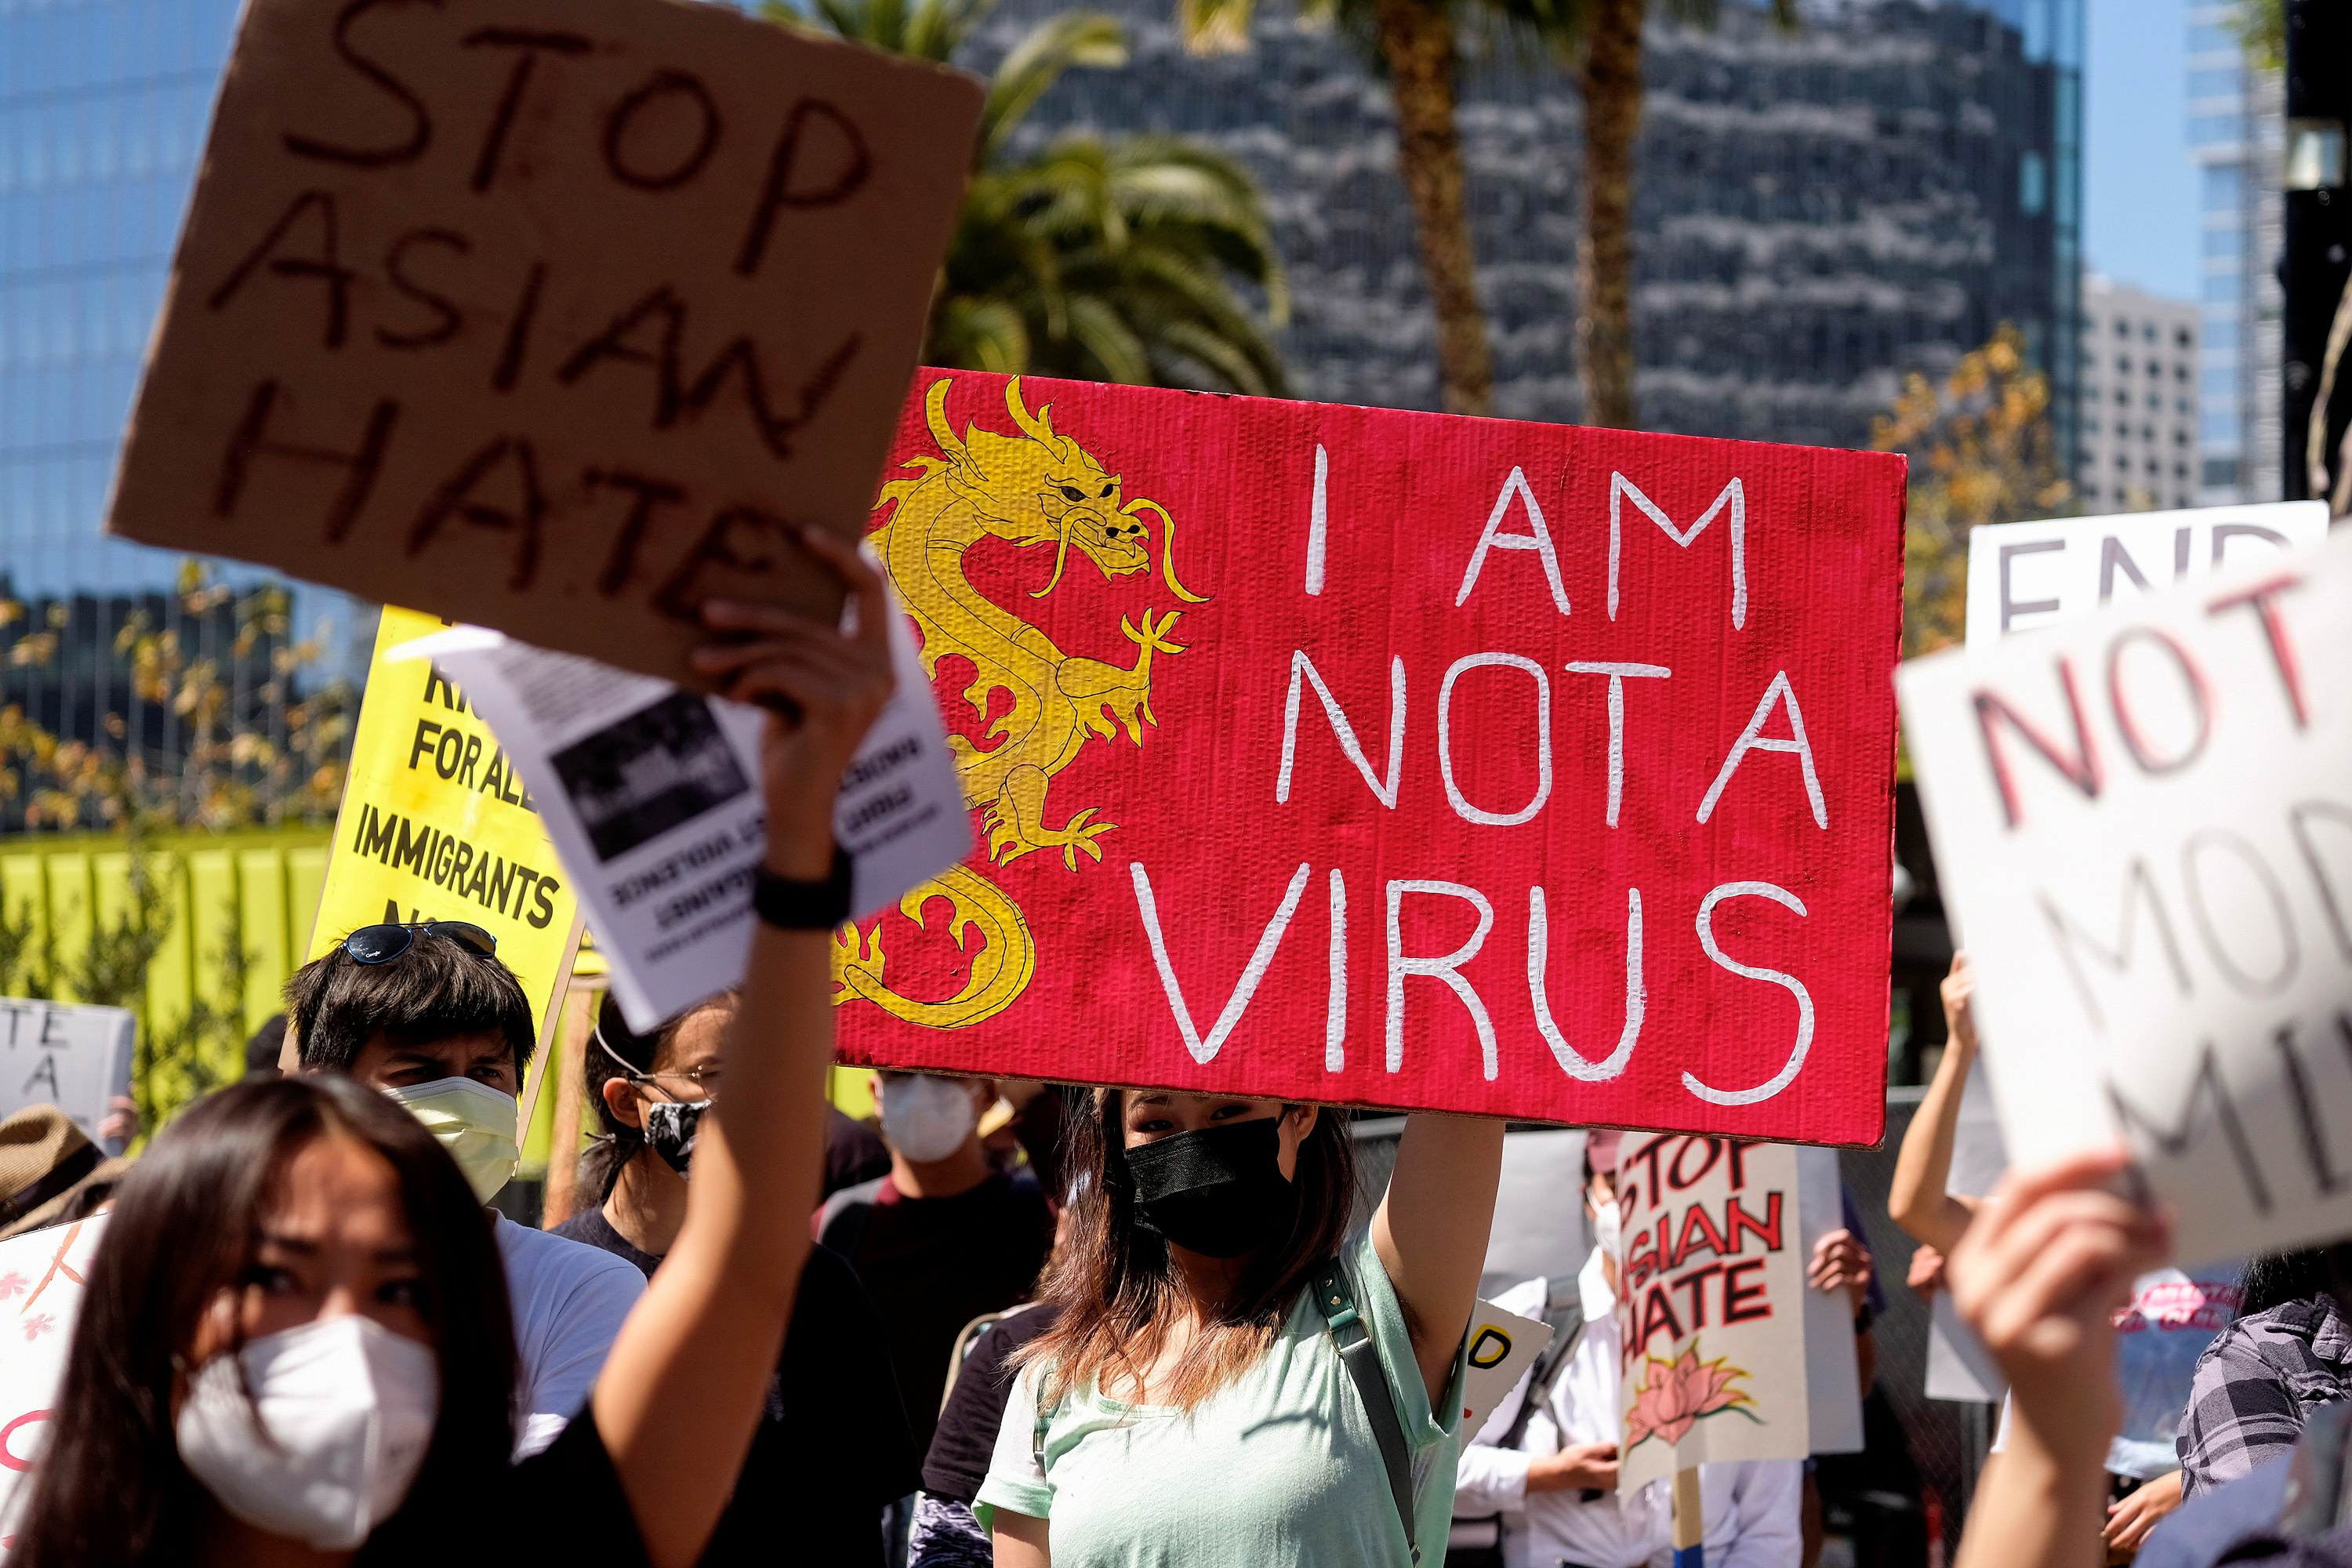 Demonstrators hold signs during a rally against anti-Asian hate crimes outside City Hall in Los Angeles, California, U.S. March 27, 2021. REUTERS/Ringo Chiu/File Photo